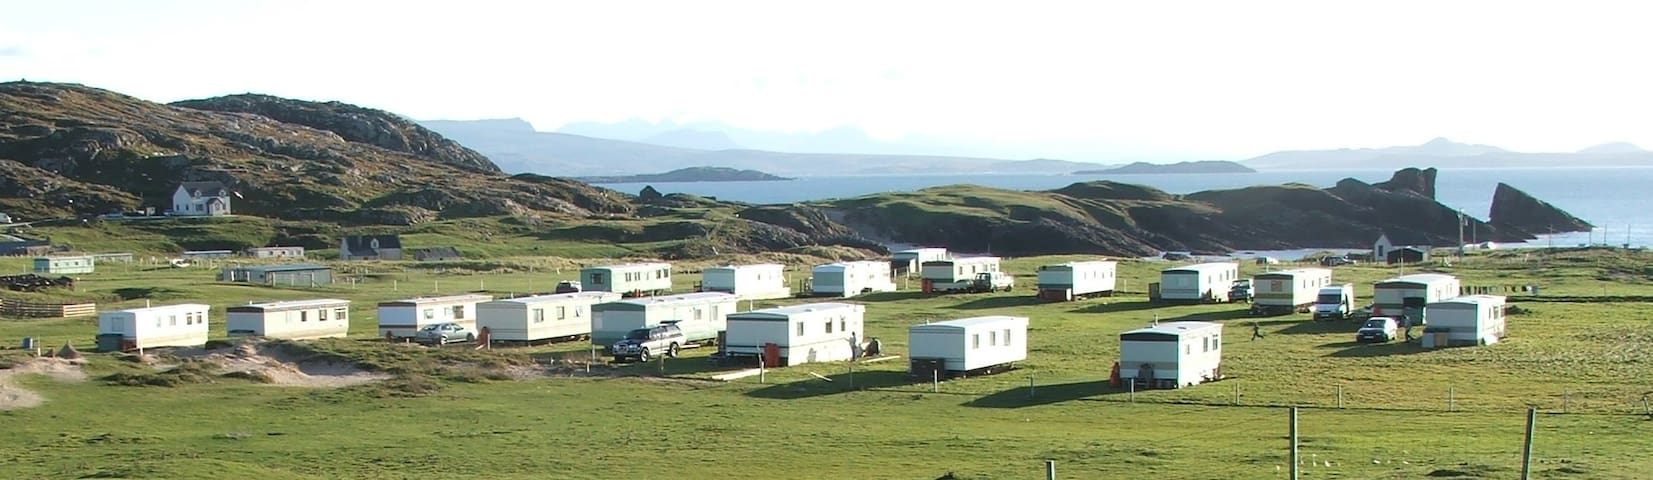 Clachtoll Holidays. Swift caravan